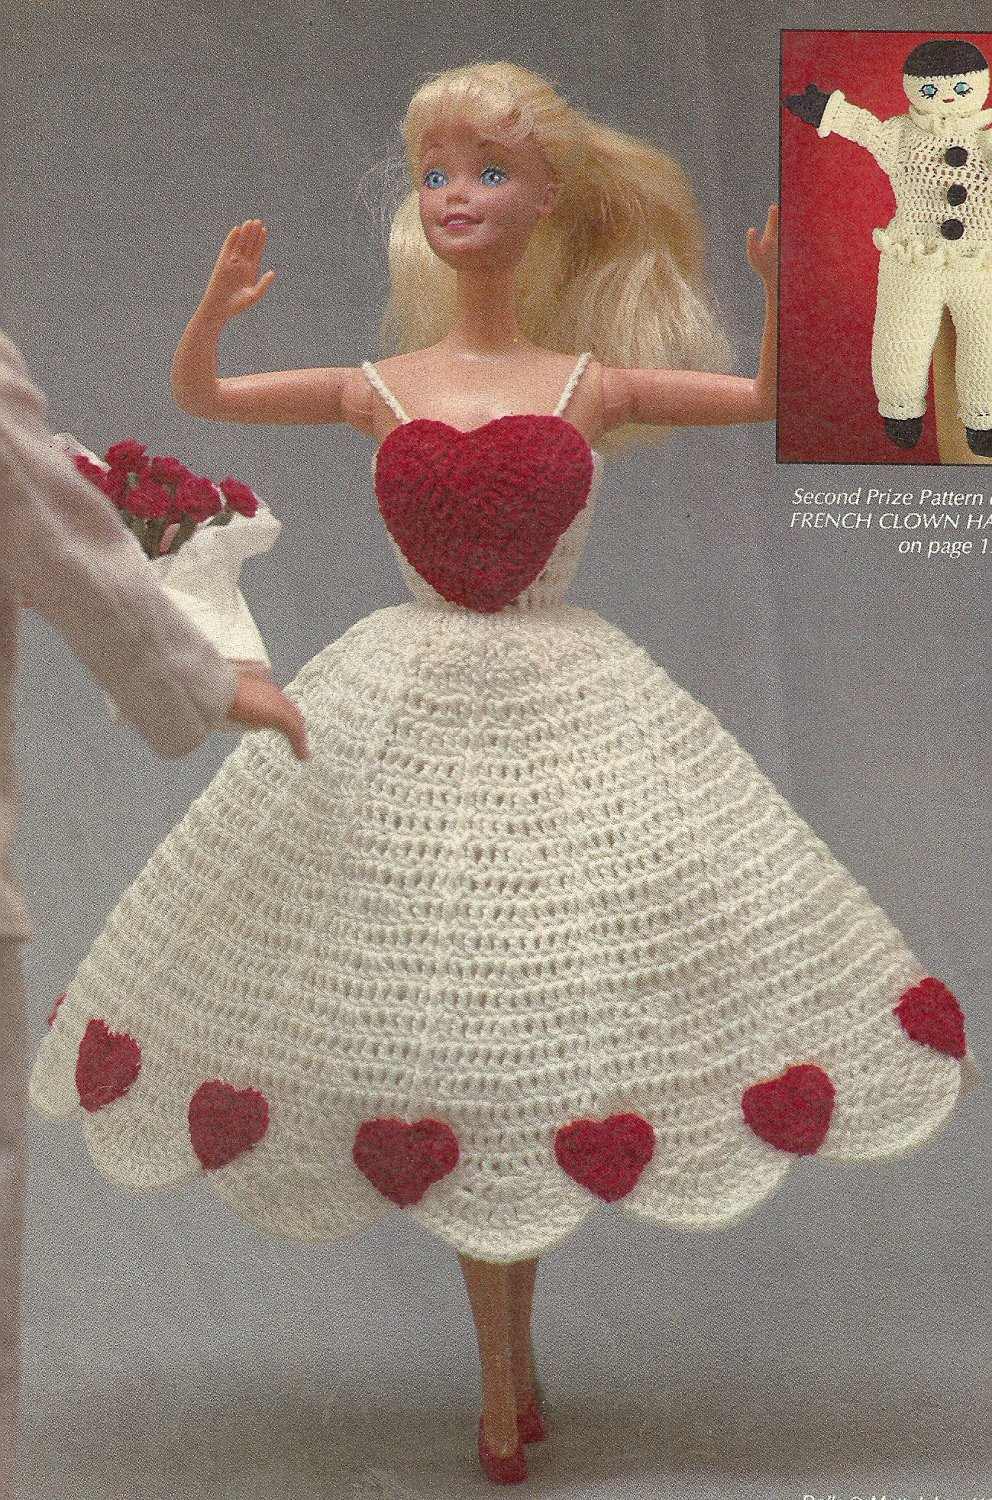 *Crochet World Mag - Feb - 1990 / Pillow Afghan - Baby Hoodie - Fashion Doll Patterns